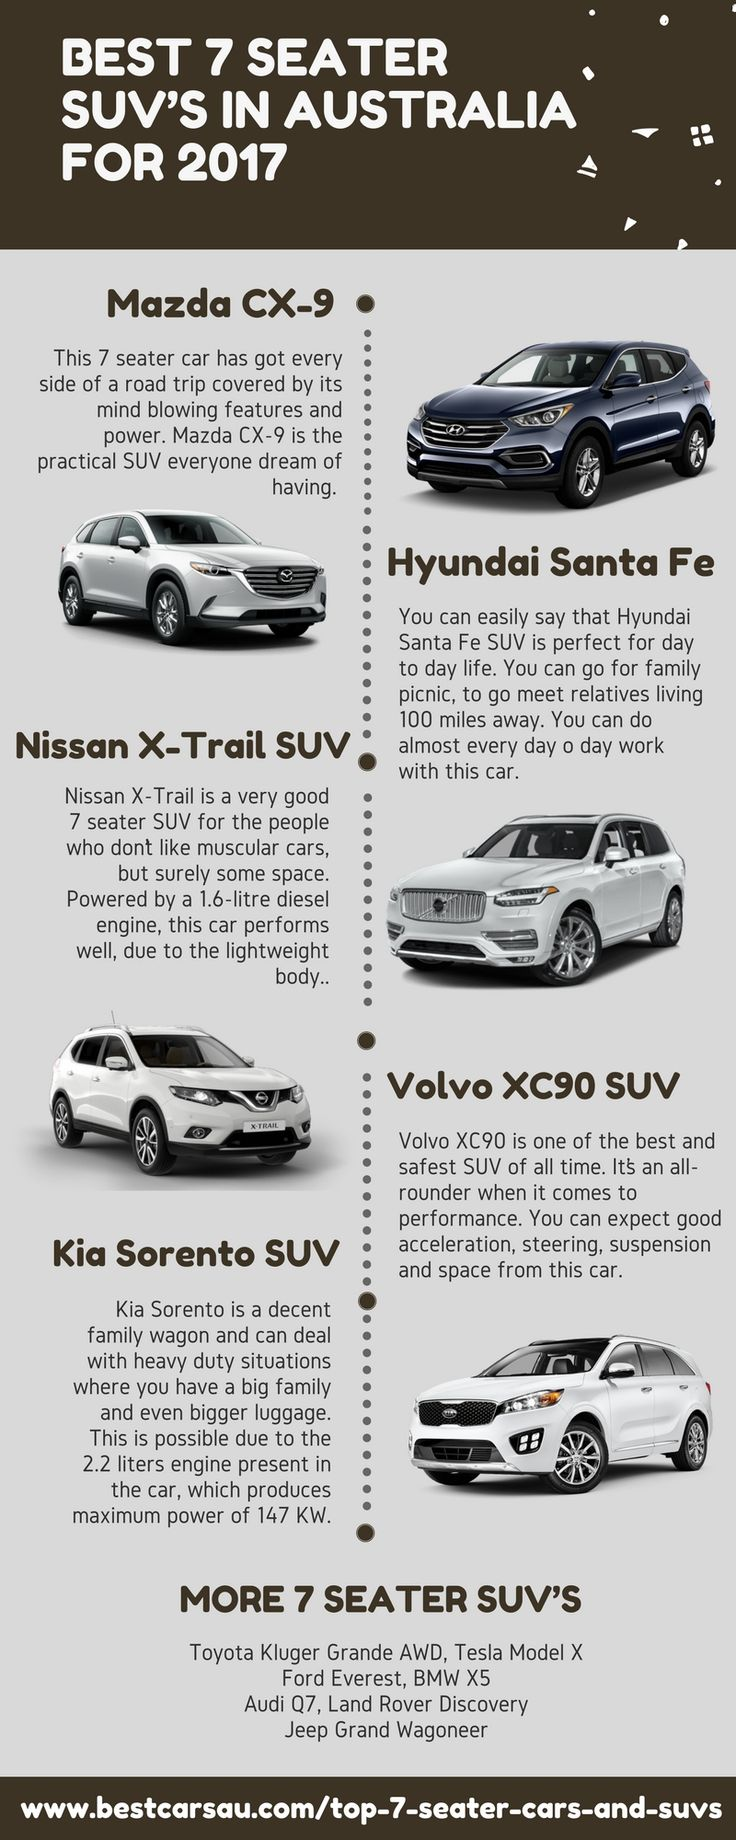 Best 7 Seater Cars of 2017